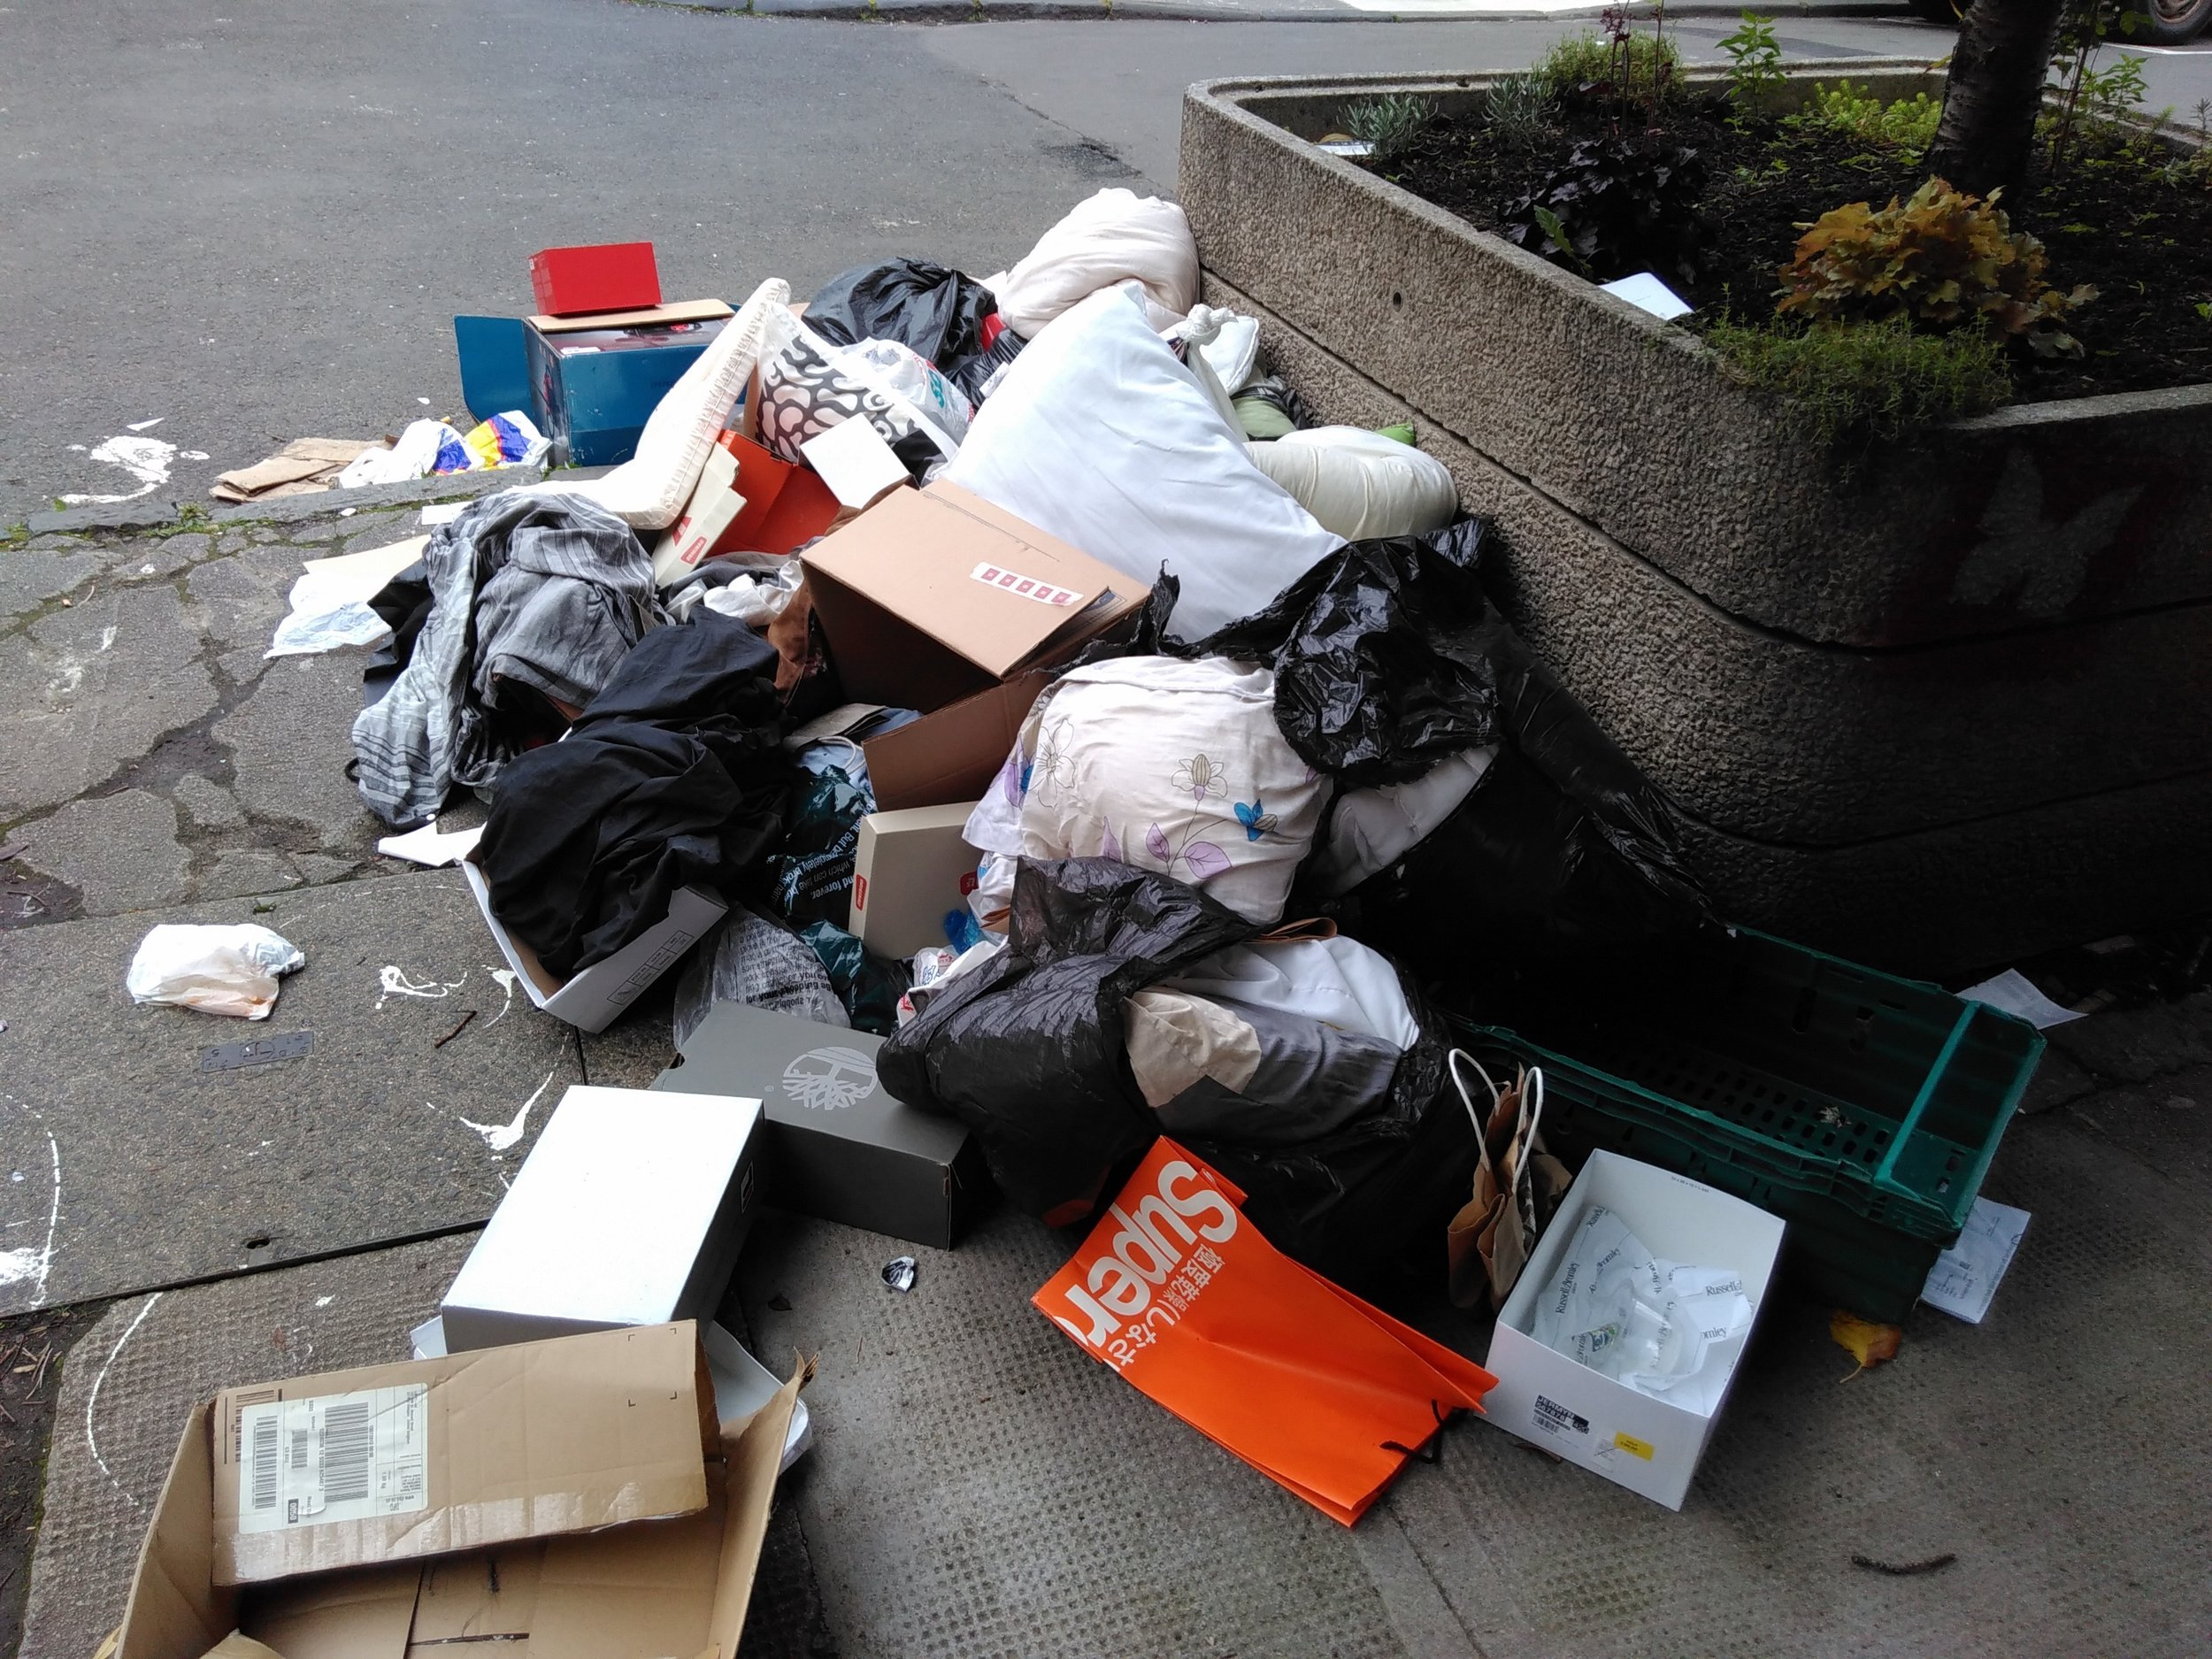 rubbish on streets.jpg